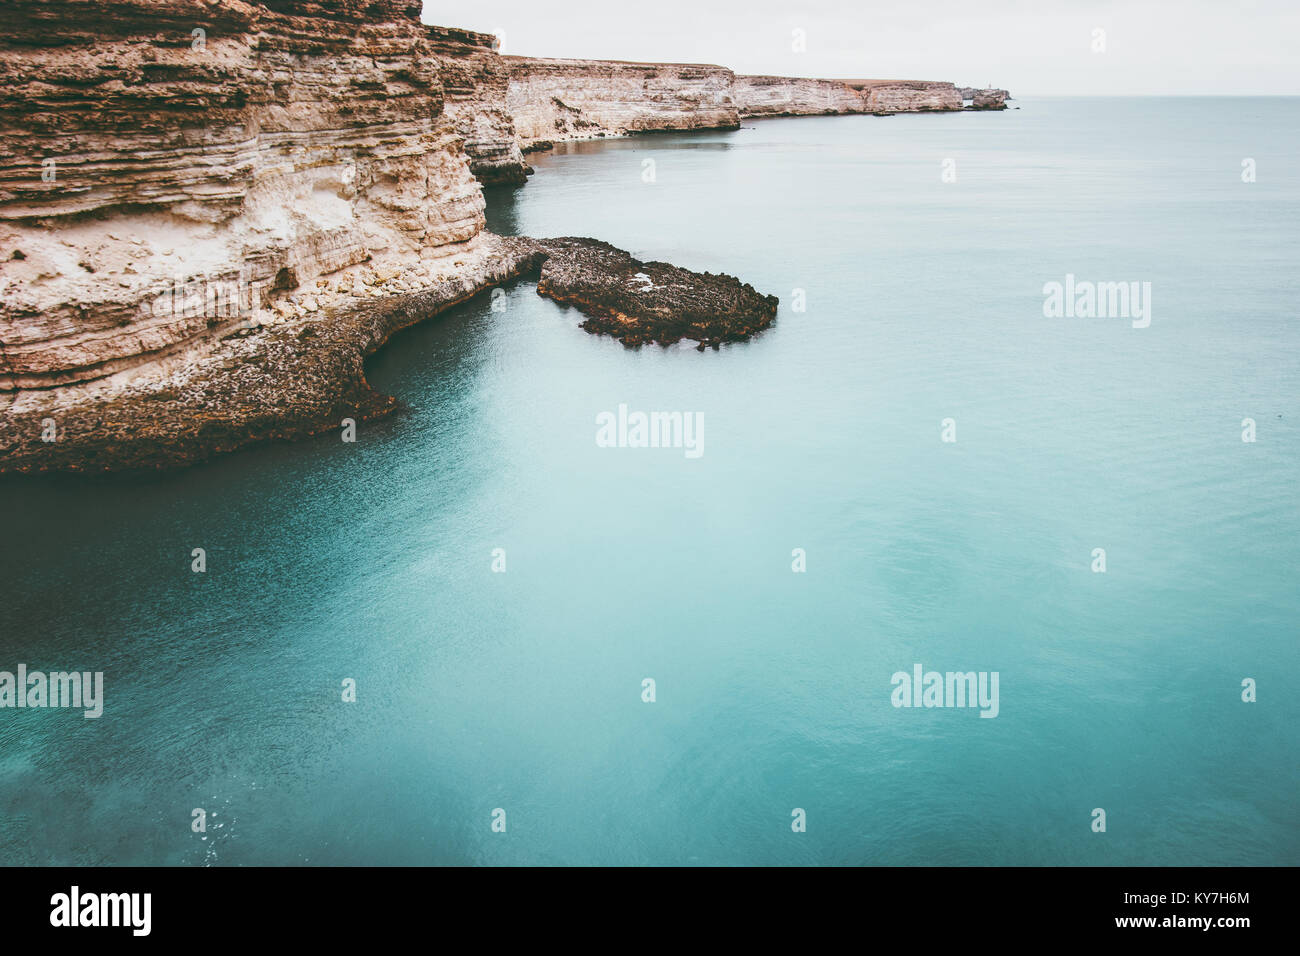 Blue Sea with rocky seaside Landscape calm and tranquility scenic view vacations travel - Stock Image